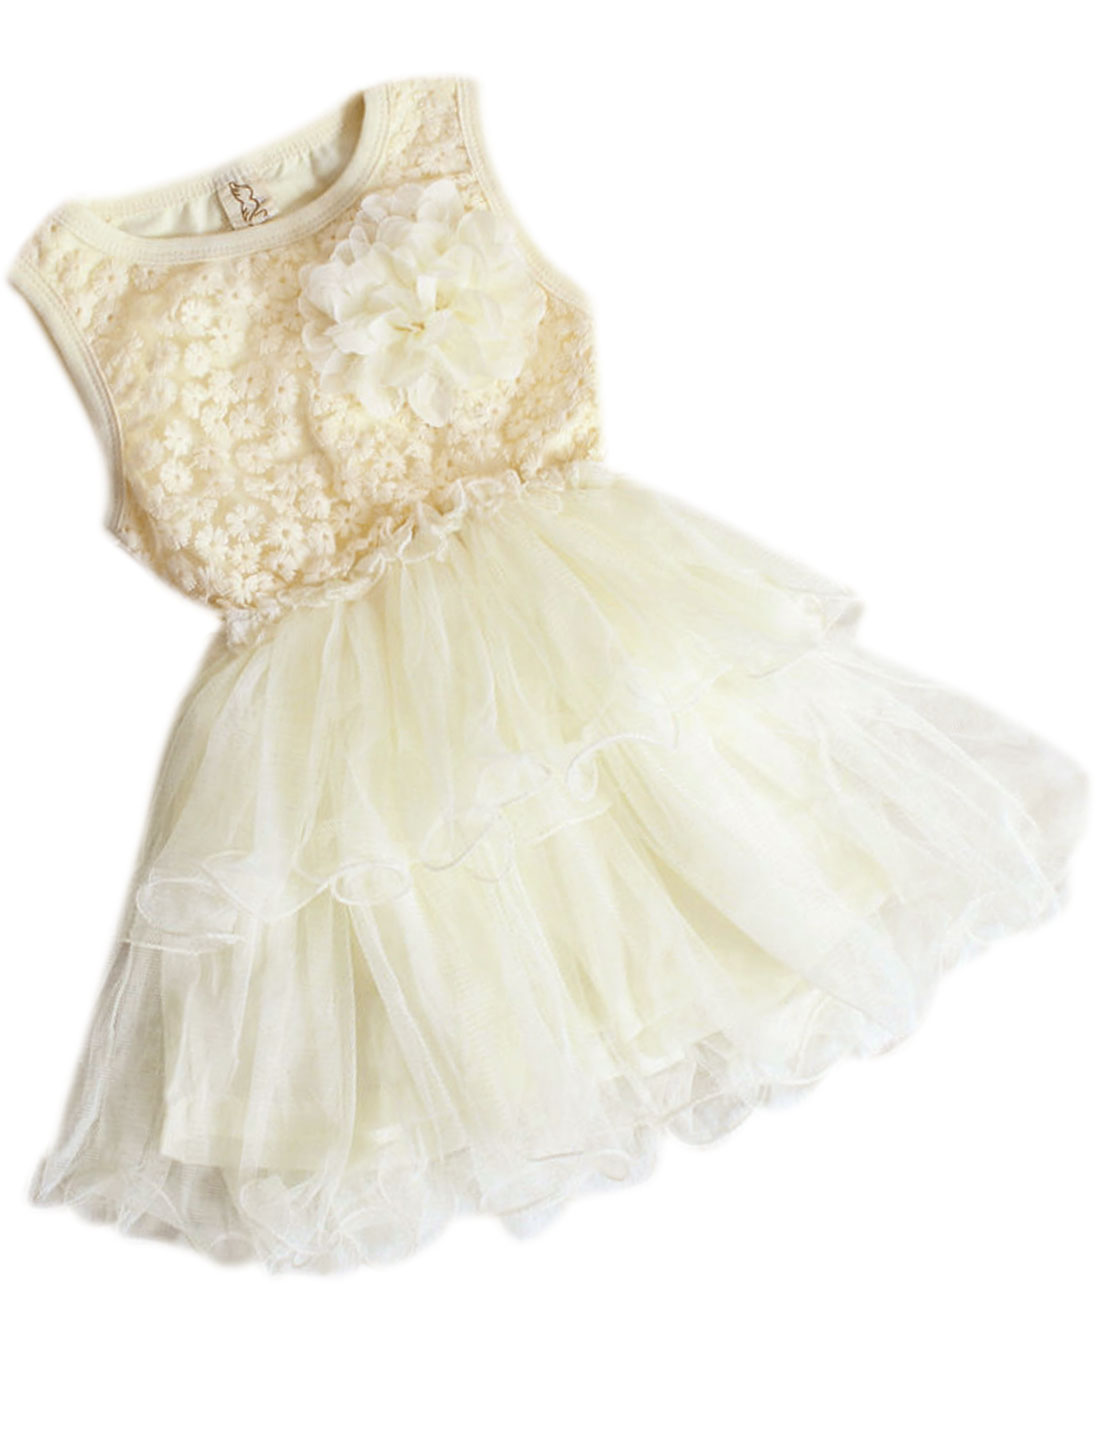 Girls Light Yellow Round Neck Floral Crochet Mesh Splicing Dress 3T